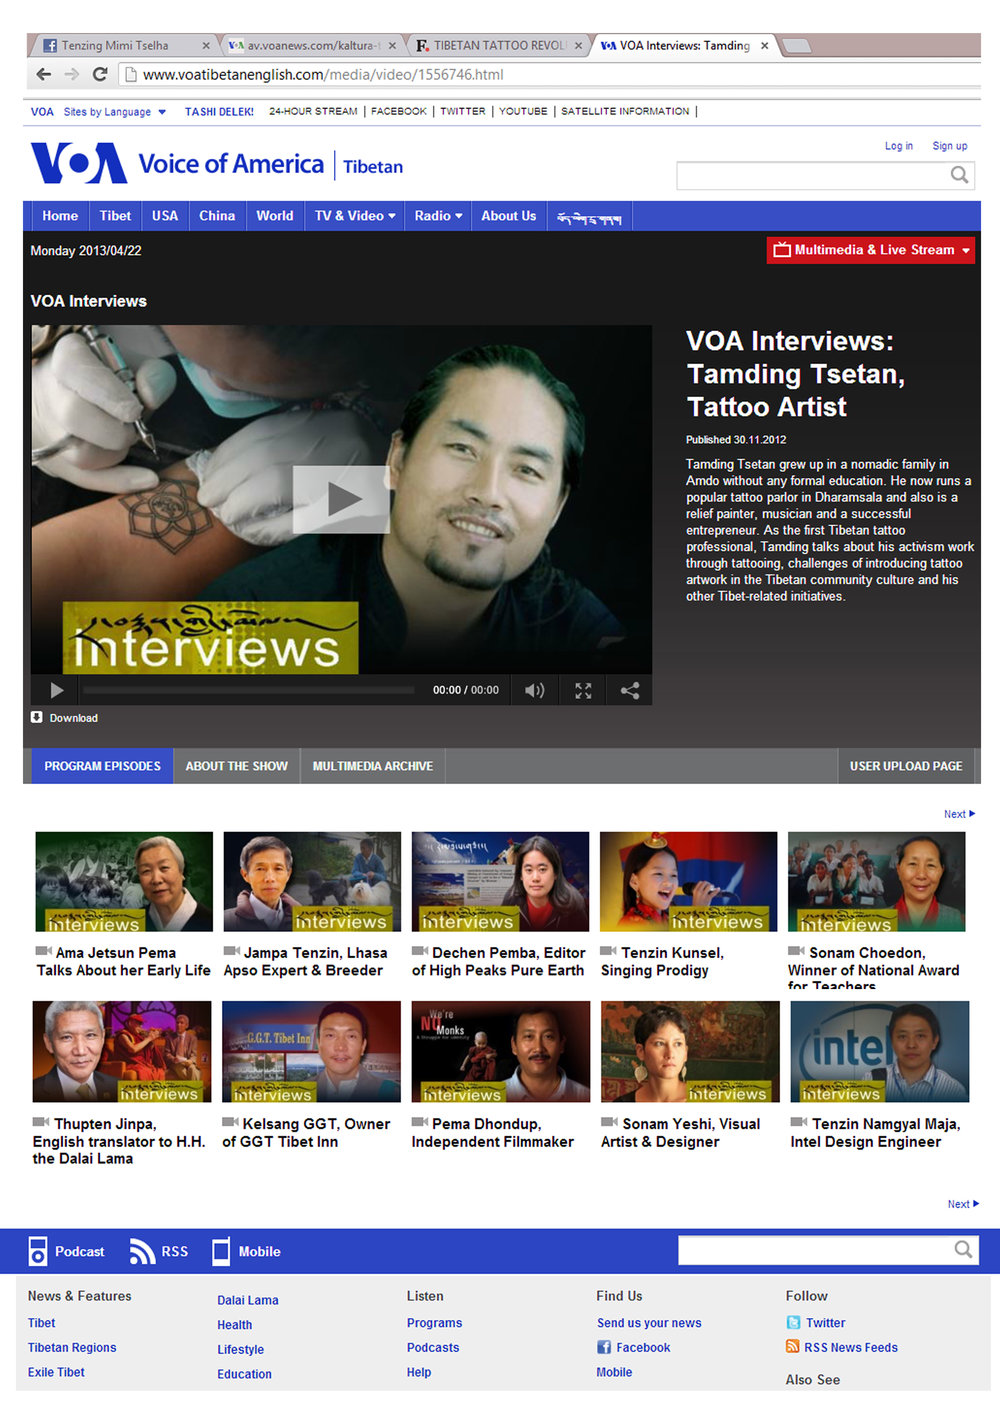 voa video page.jpg